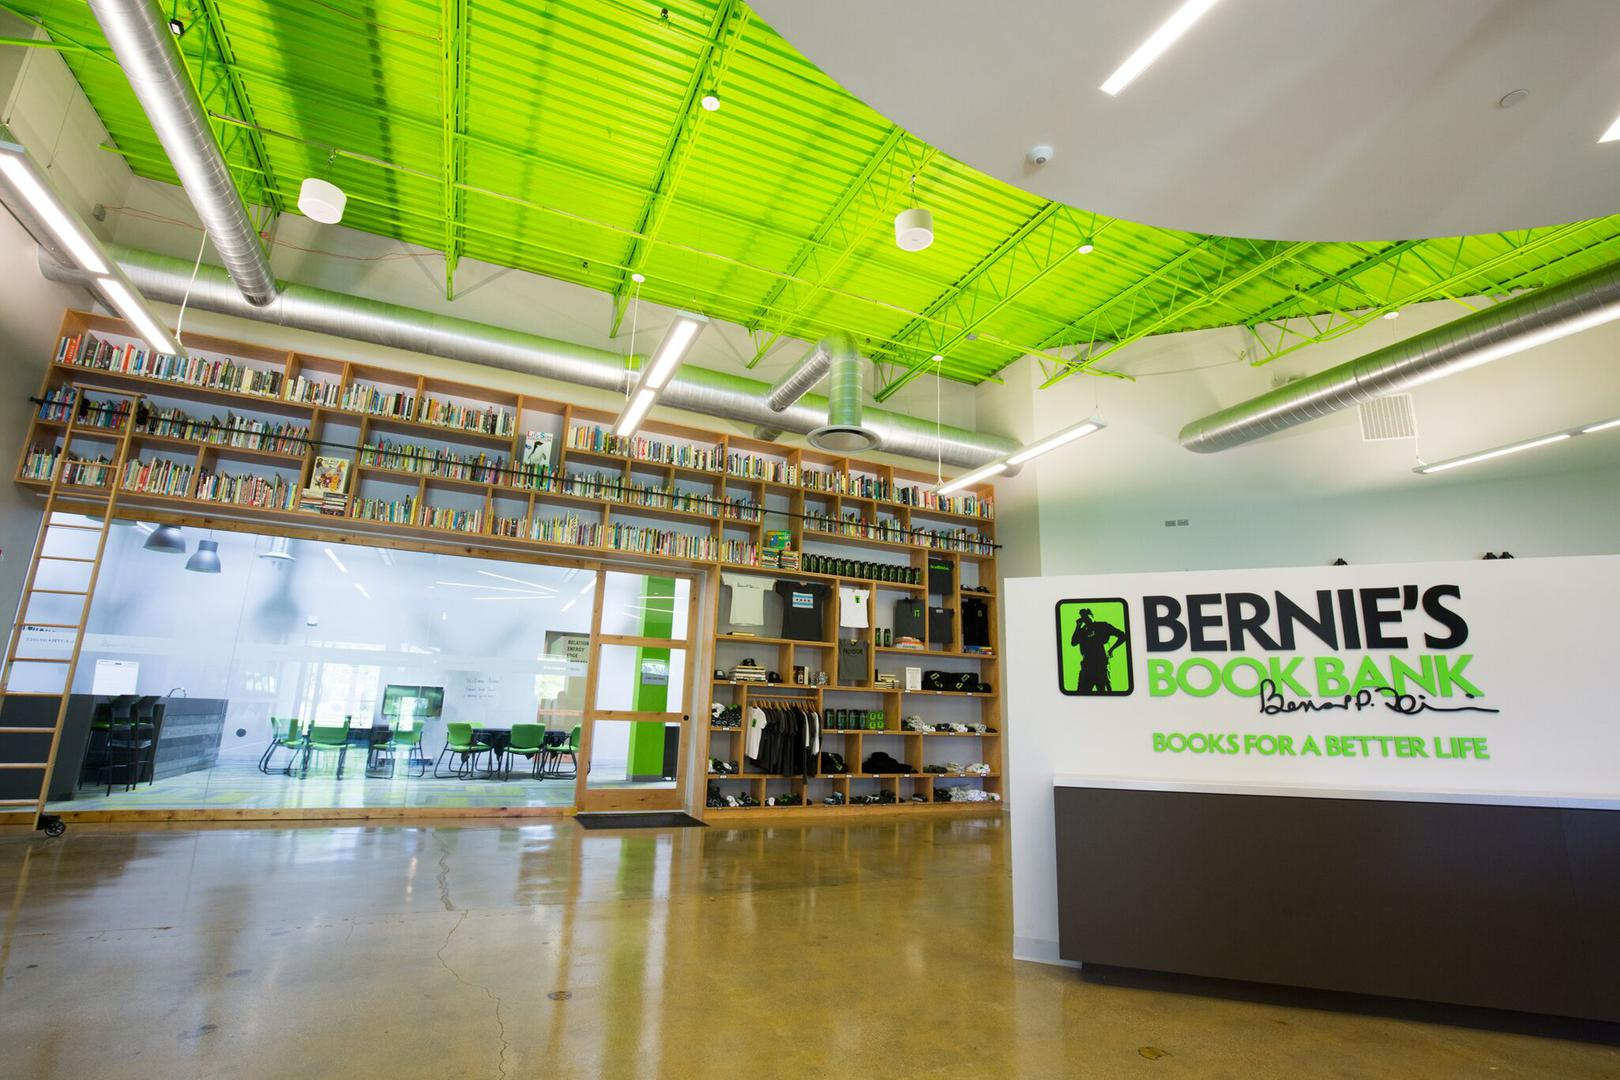 space at Bernie's Book Bank